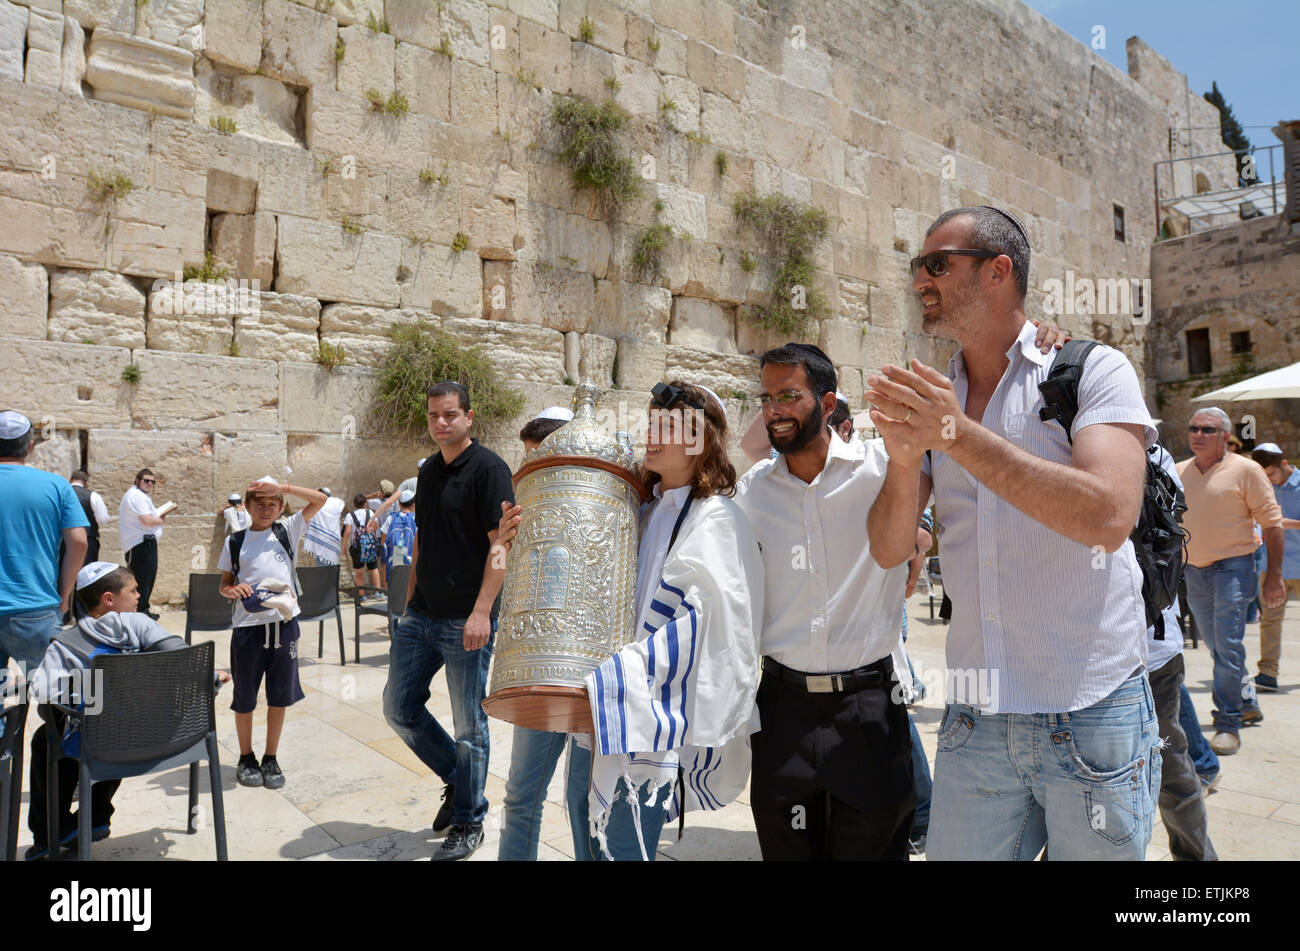 JERUSALEM, ISR - MAY 05 2015:Bar Mitzvah ritual at the Wailing wall in Jerusalem, Israel.Boy who has become a Bar - Stock Image